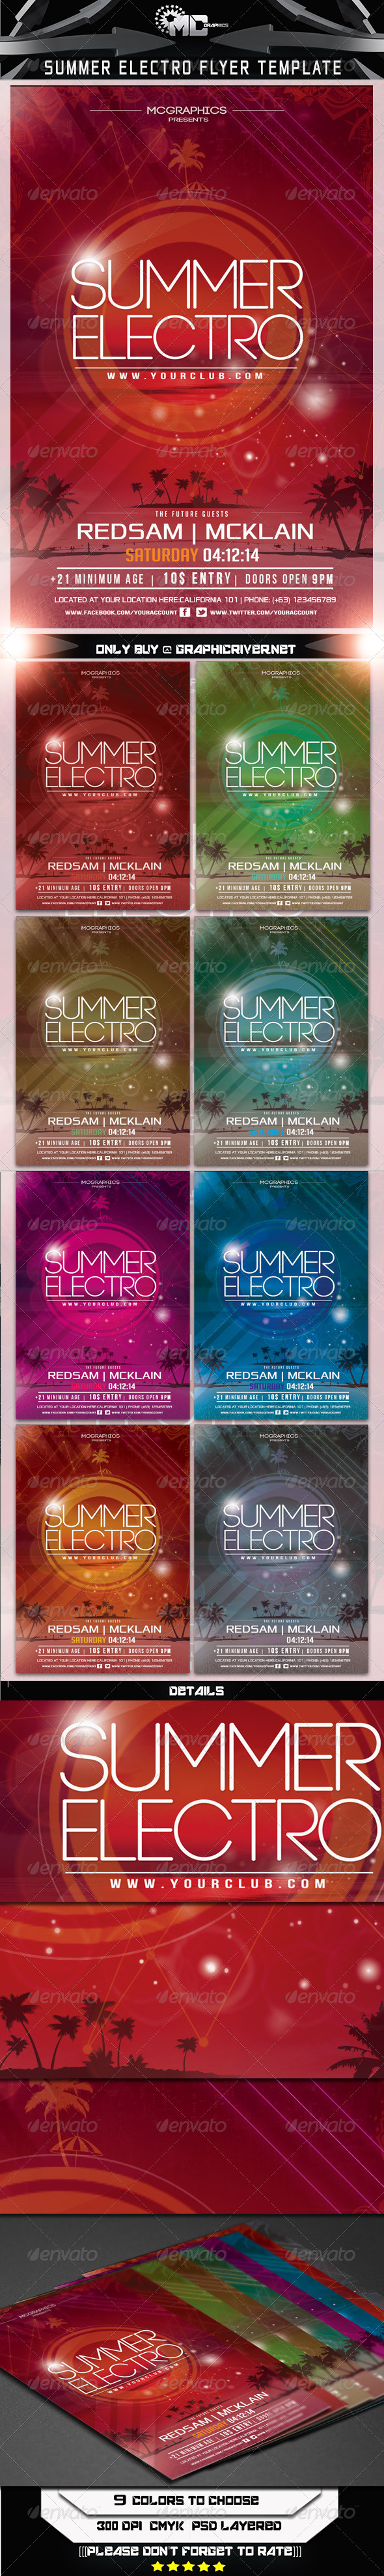 Summer Electro Flyer Template - Flyers Print Templates